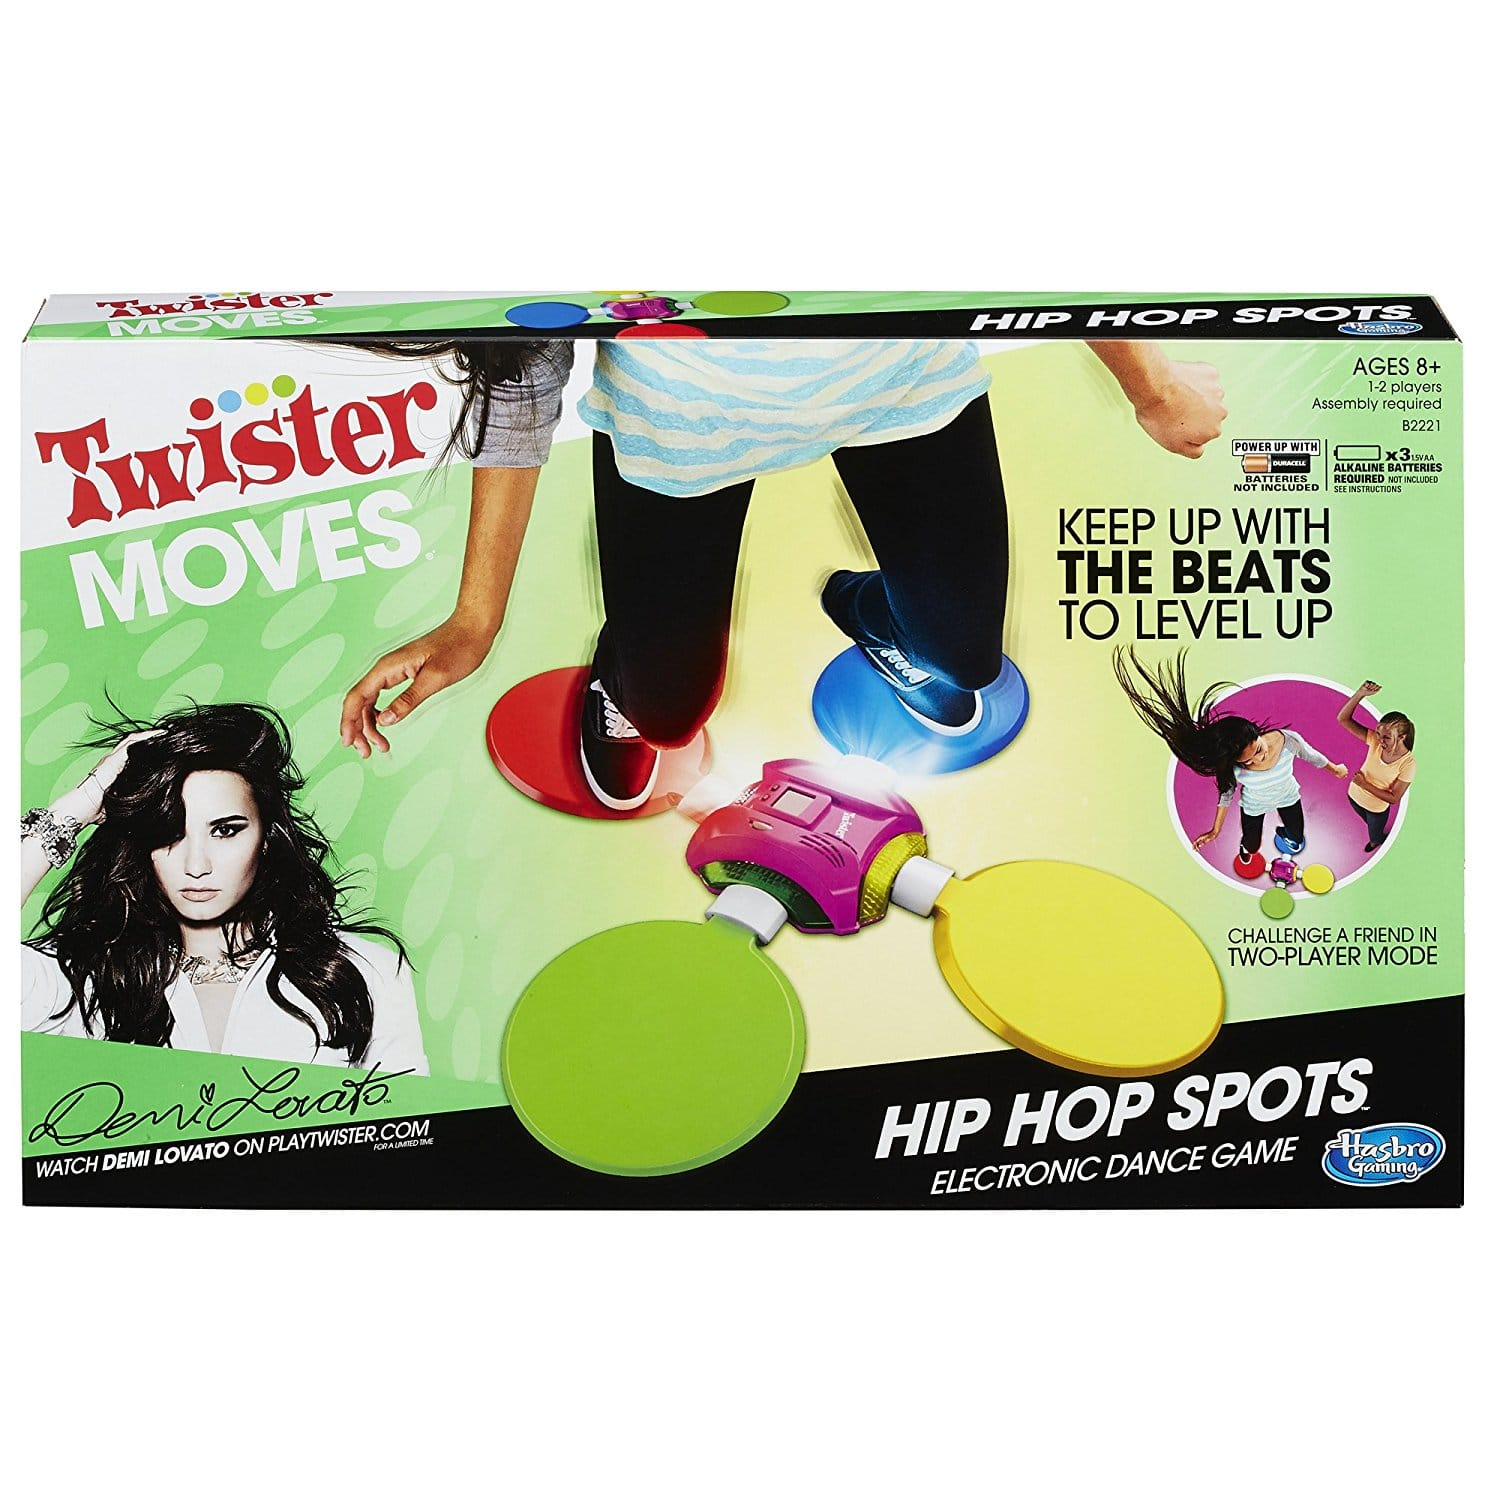 Twister Moves Hip Hop Spots Game 10.89 W/free shipping $10.25